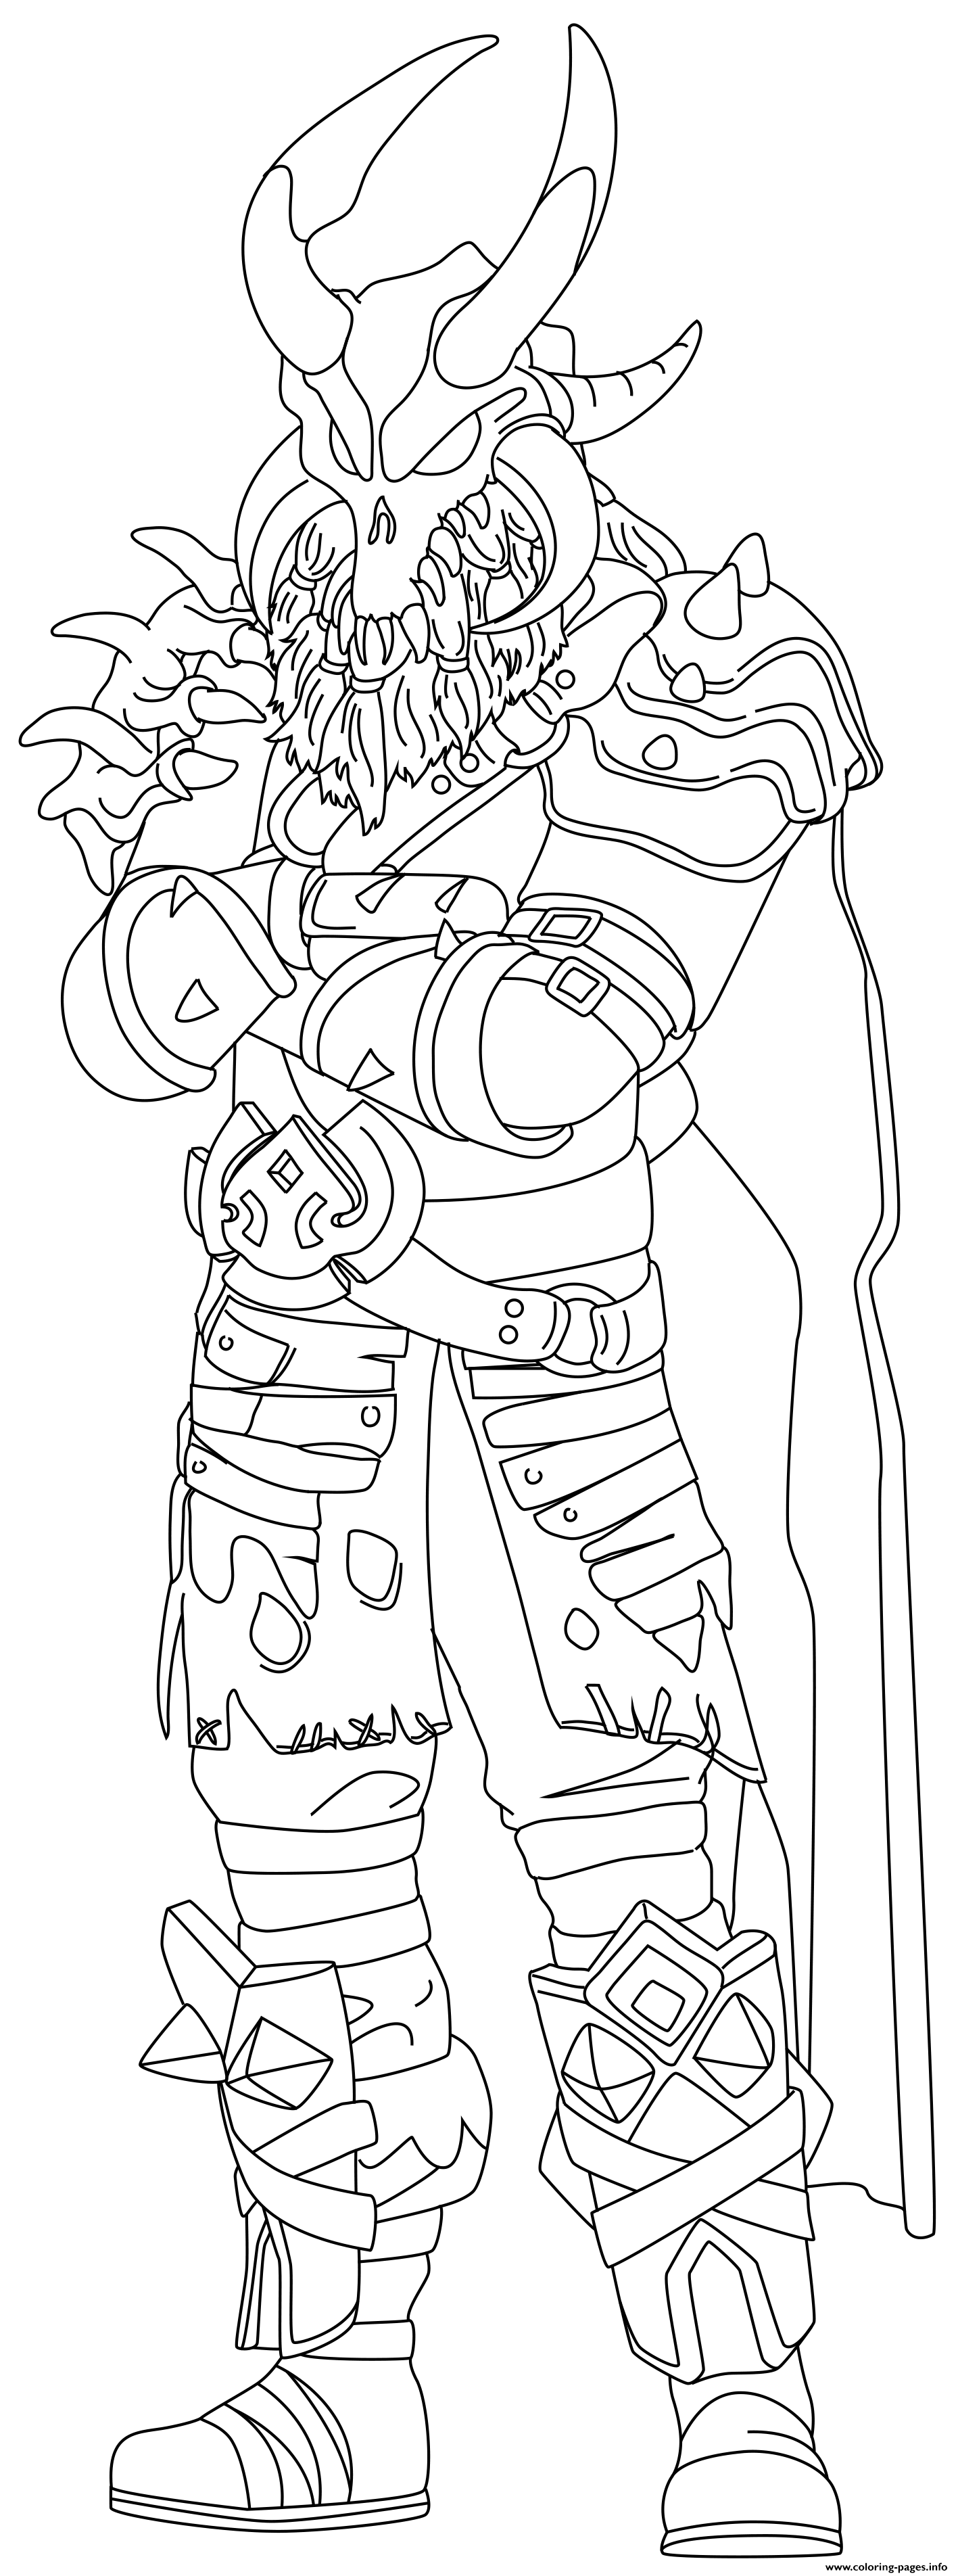 Ragnarok Fortnite Skin Hd coloring pages